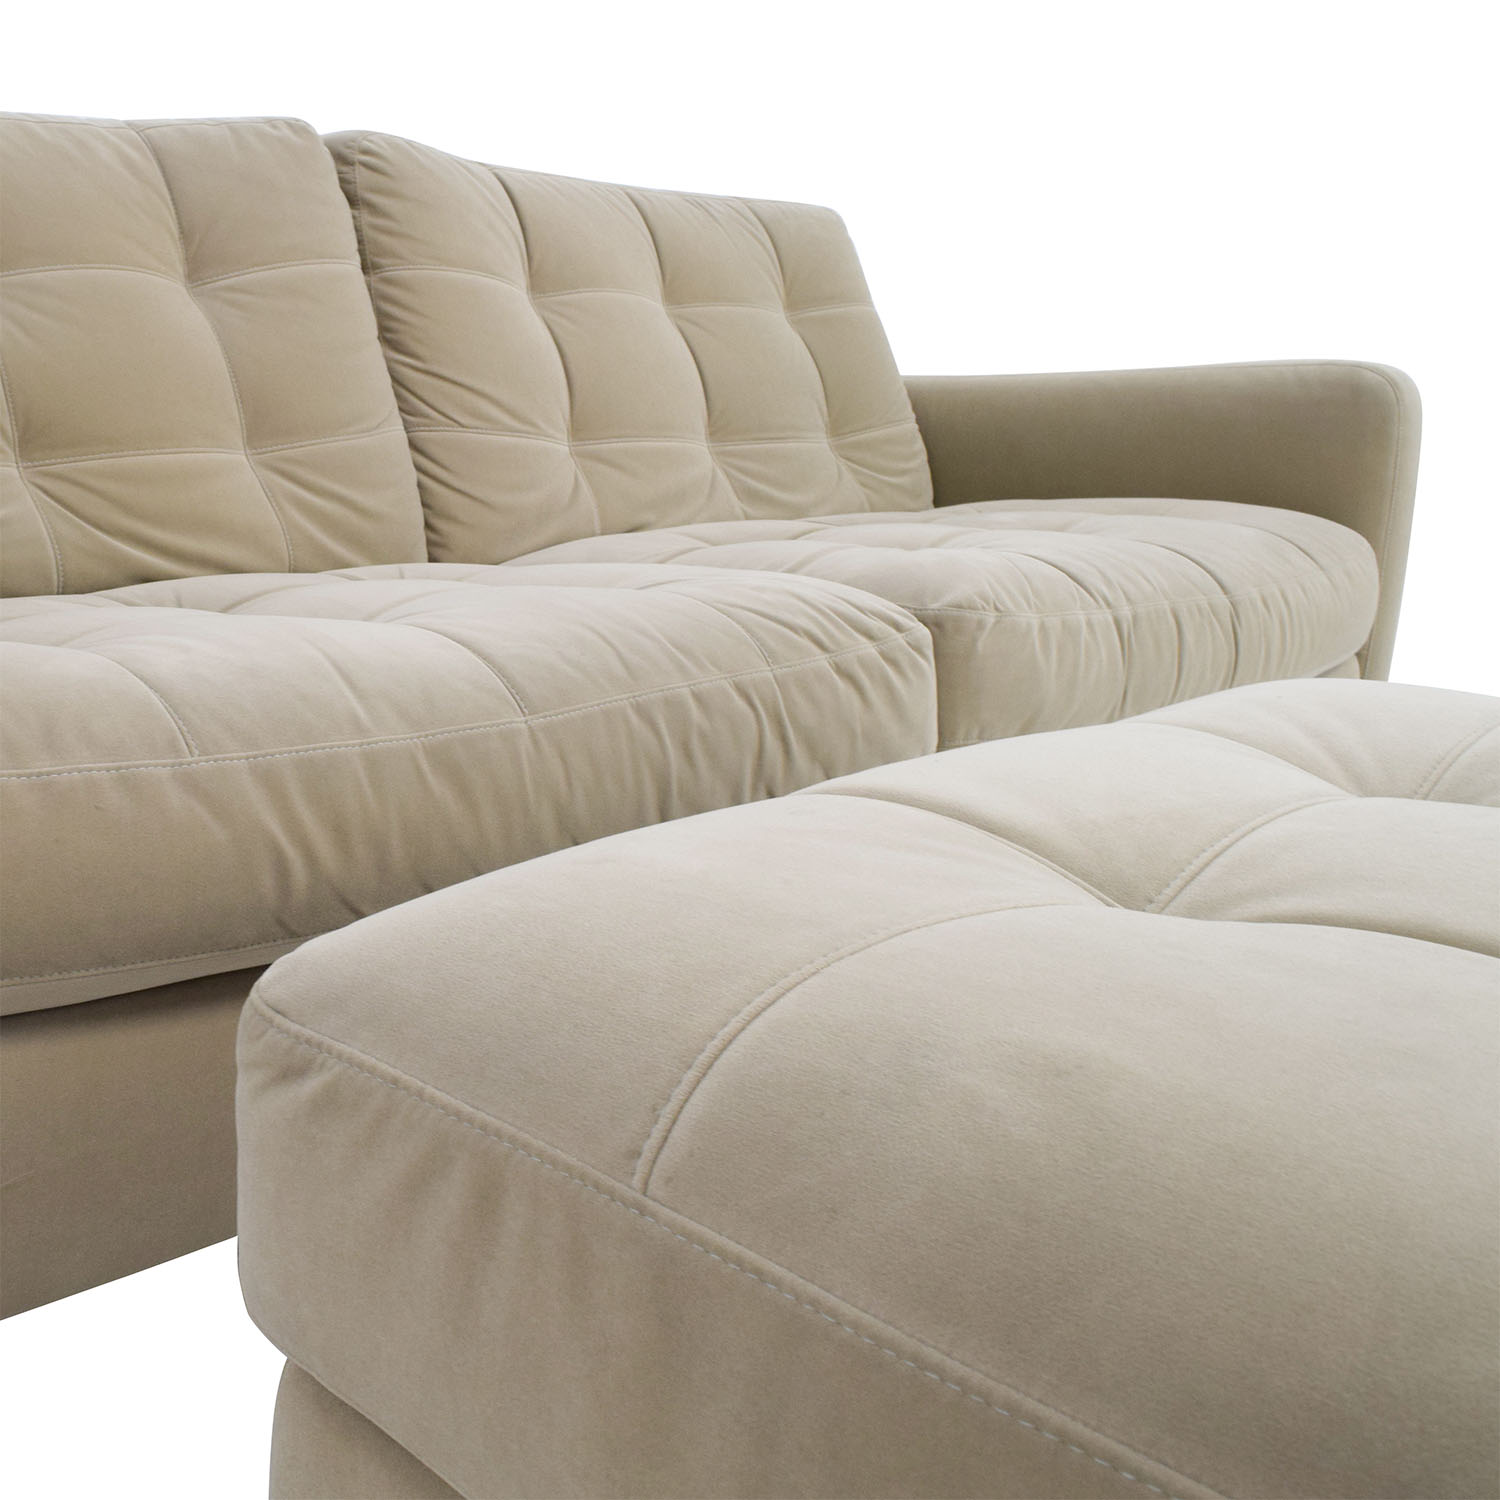 ... Natuzzi Natuzzi Beige Microfiber Tufted Couch And Ottoman Discount ...